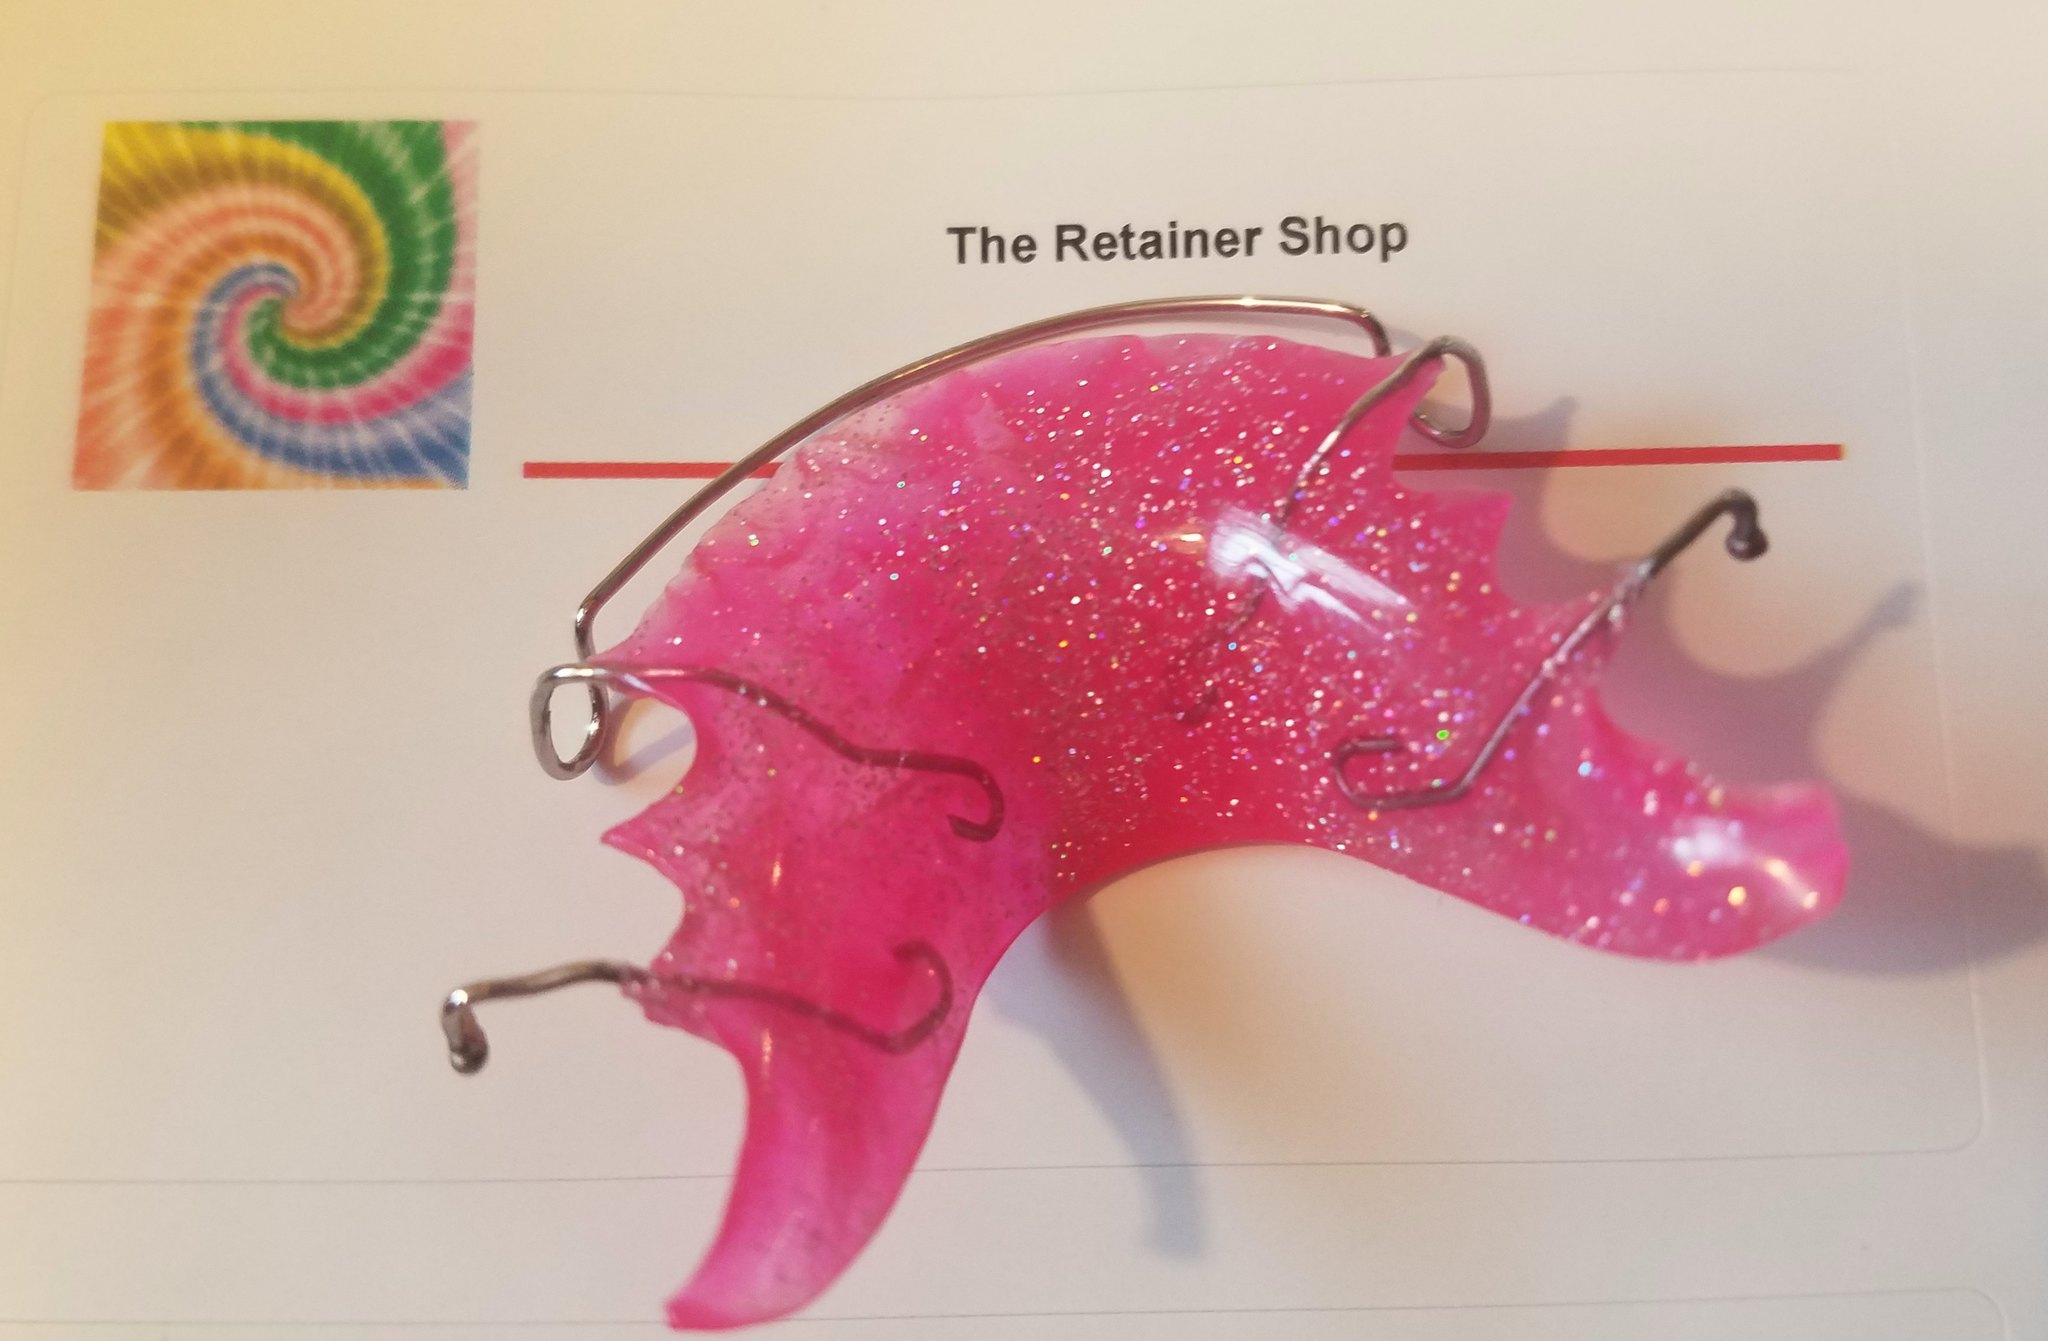 the retainer shop   Flickr